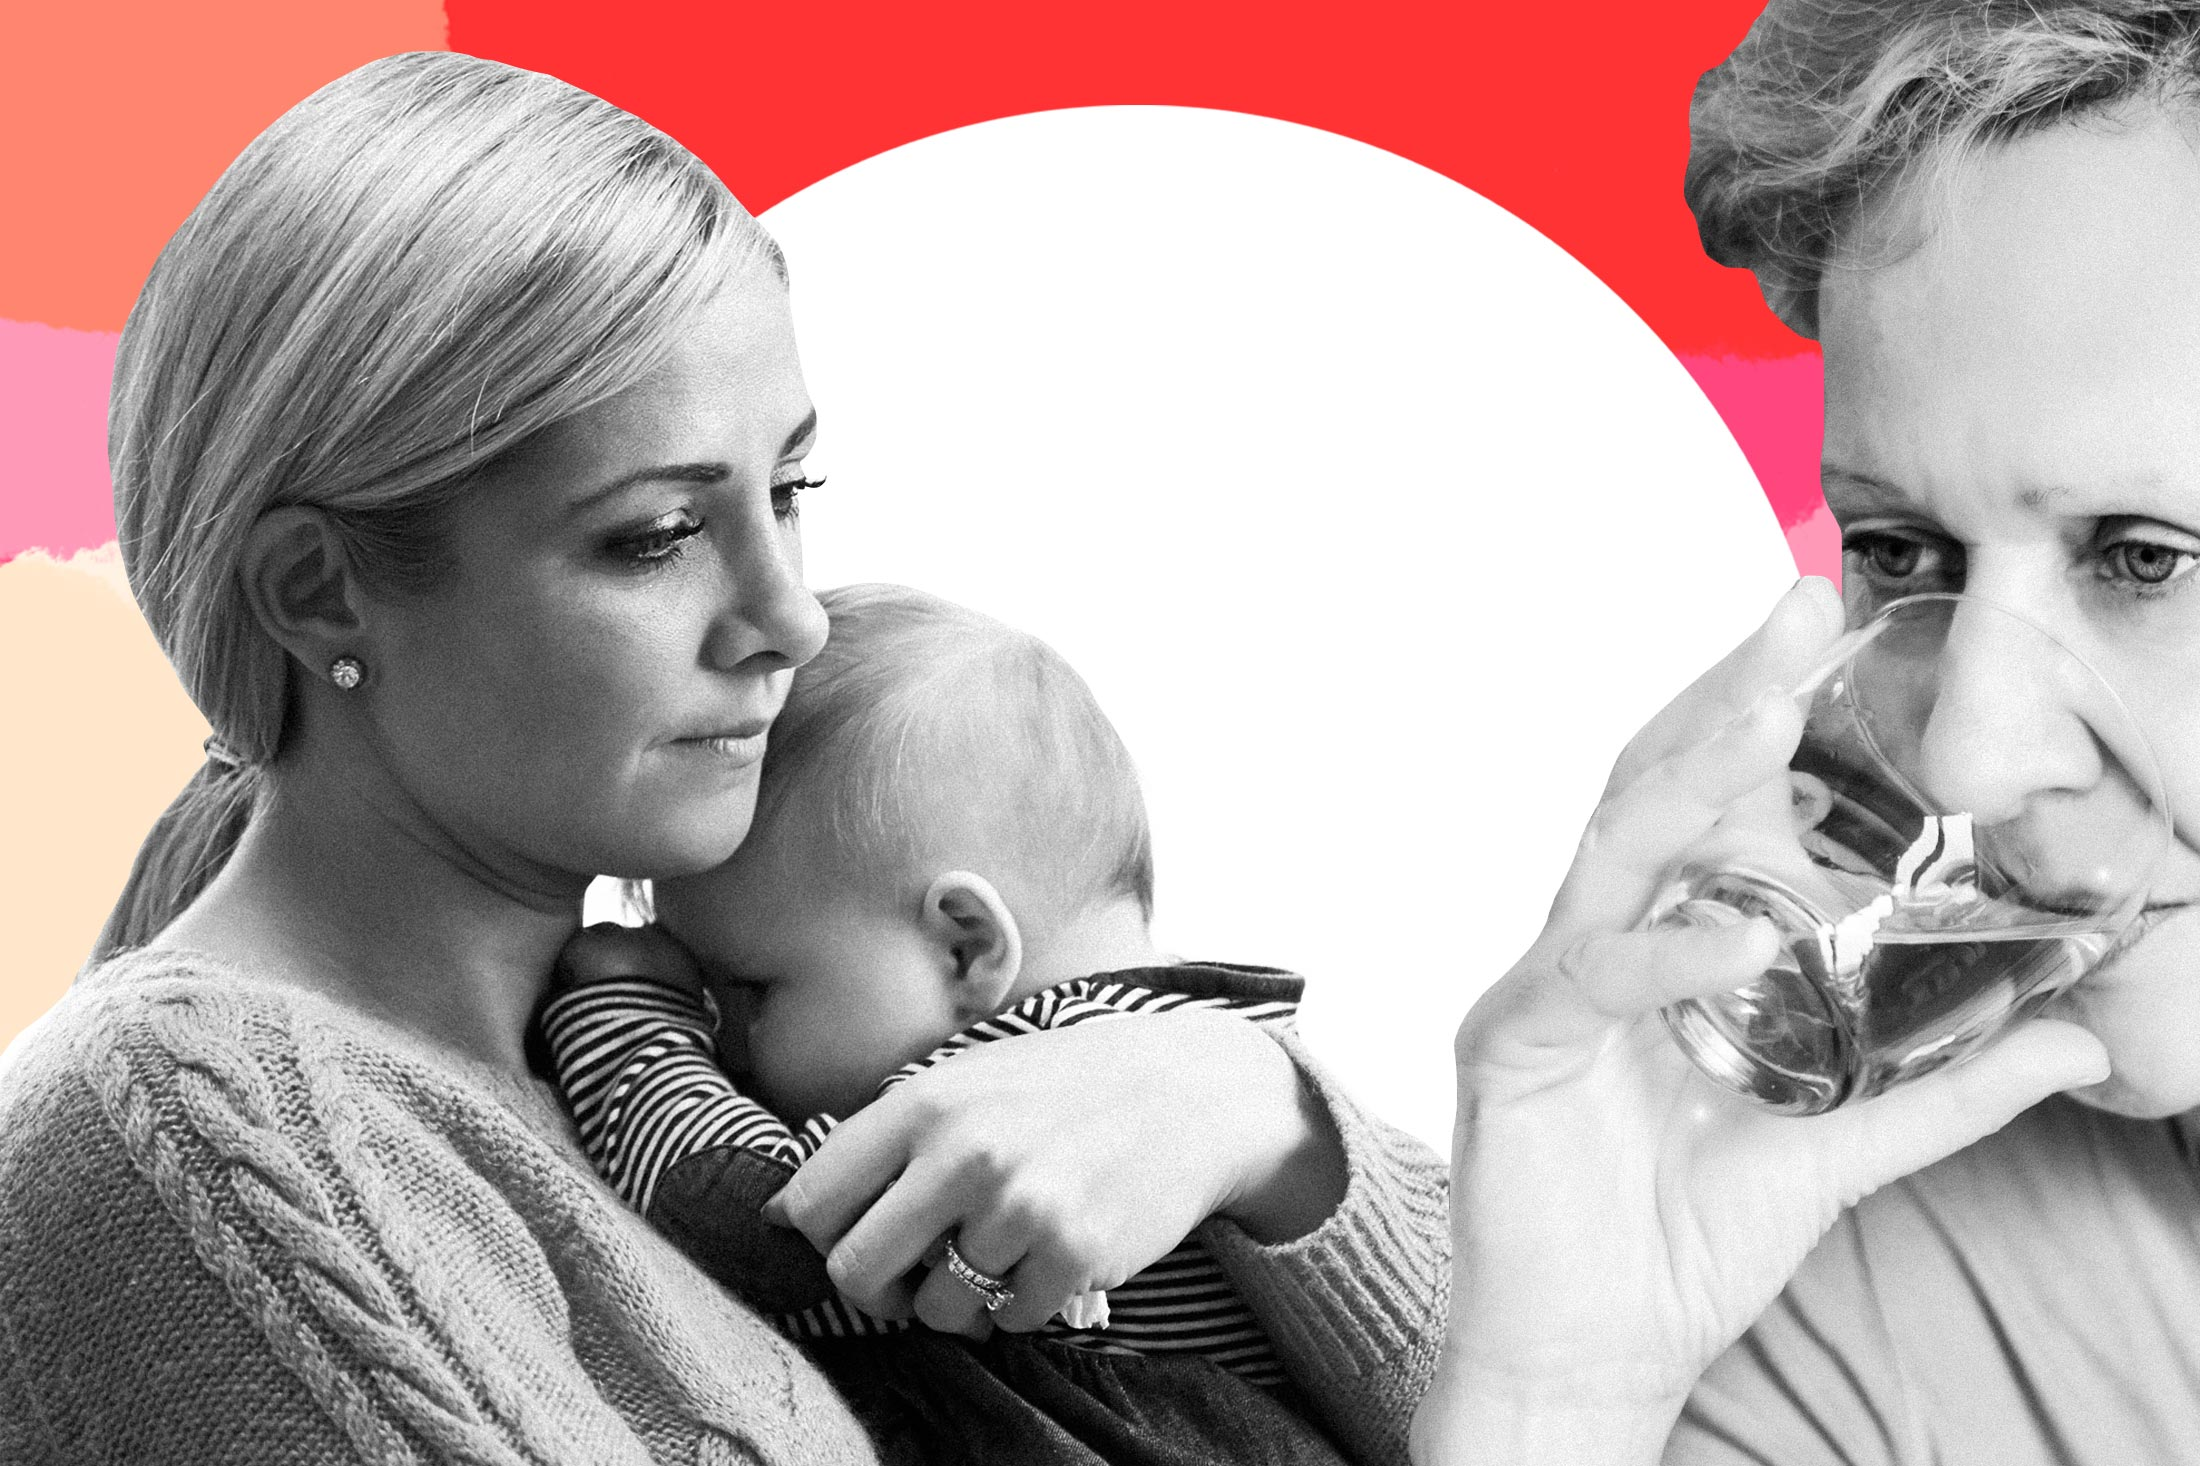 Photo illustration of a grandmother drinking besides a new mother holding her infant.